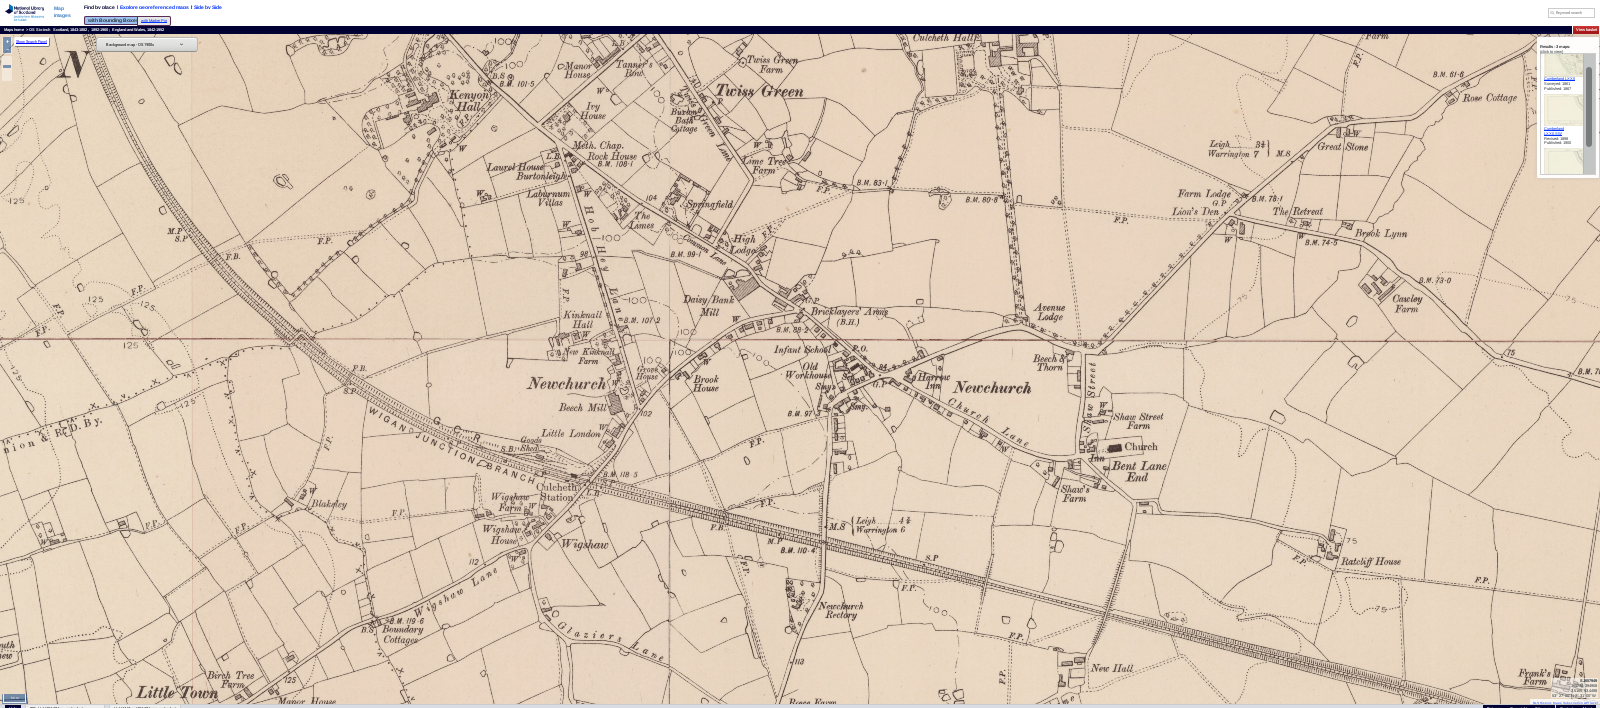 Culcheth 1900 OS map Screenshot 2019 02 28 18 50 46